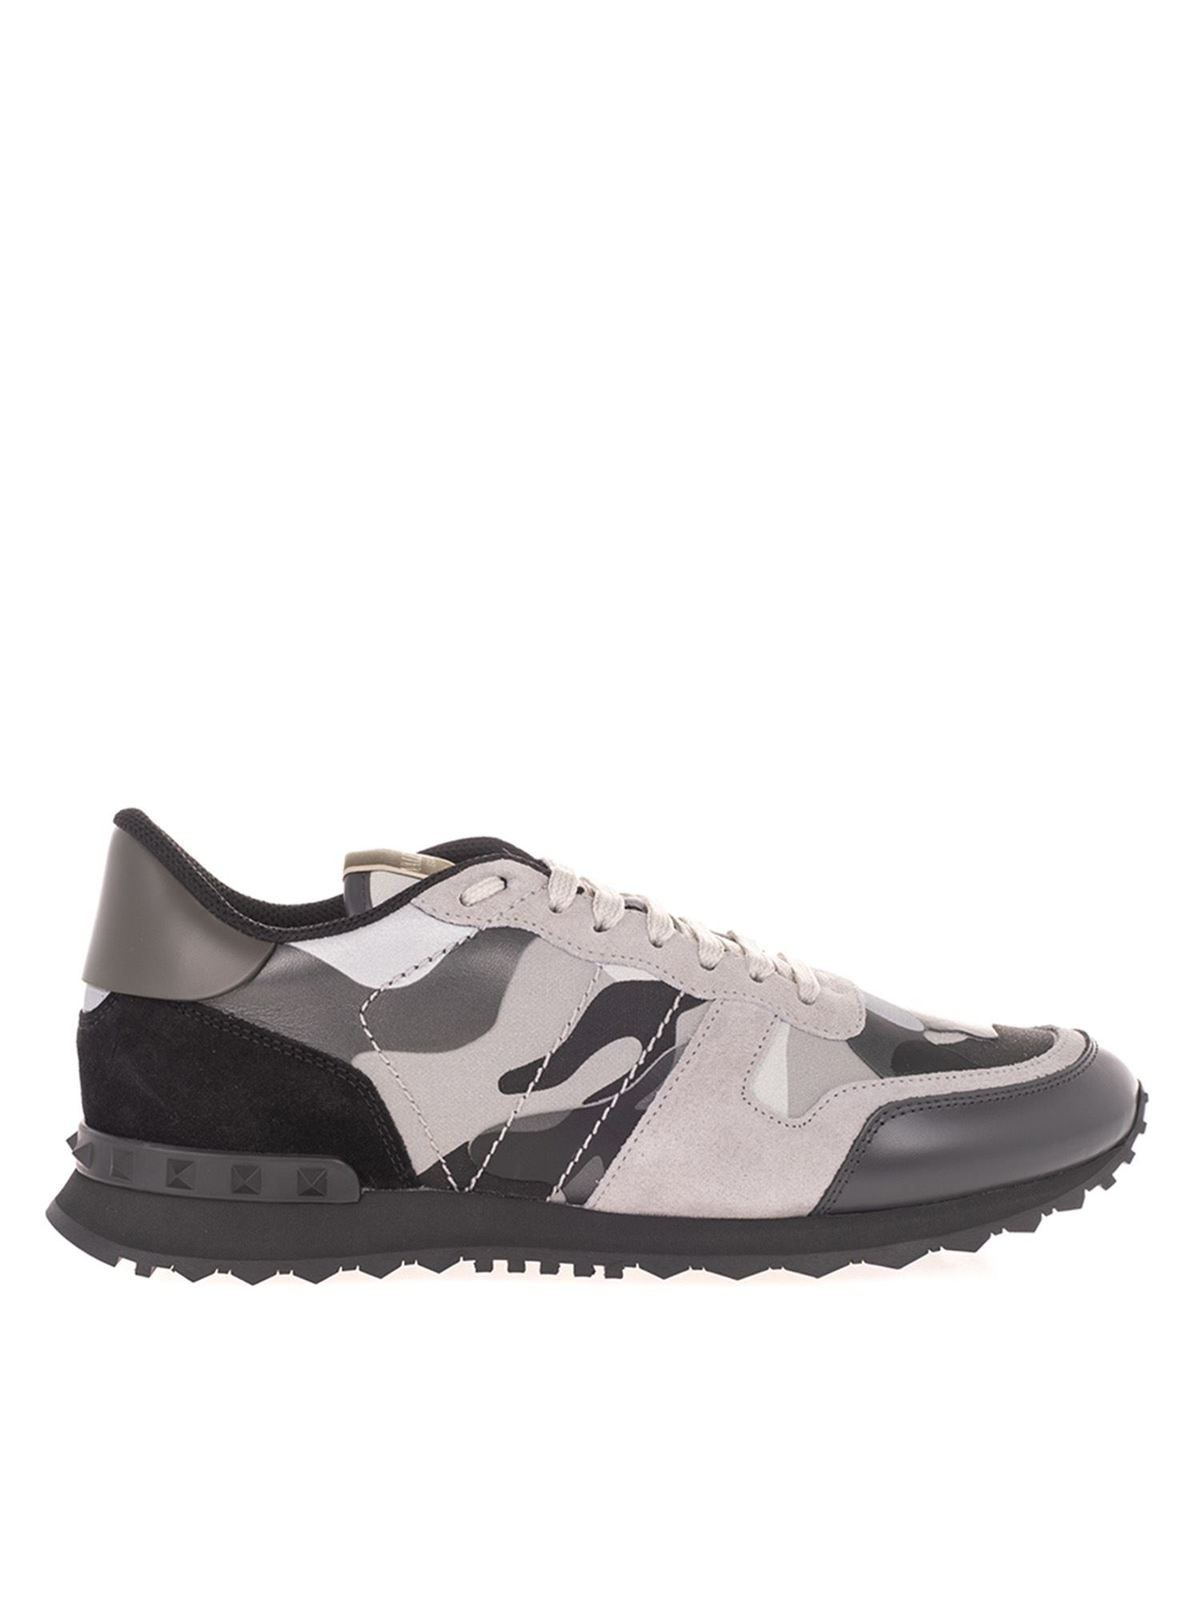 Valentino Suedes ROCKRUNNER CAMOUFLAGE SNEAKERS IN GREY